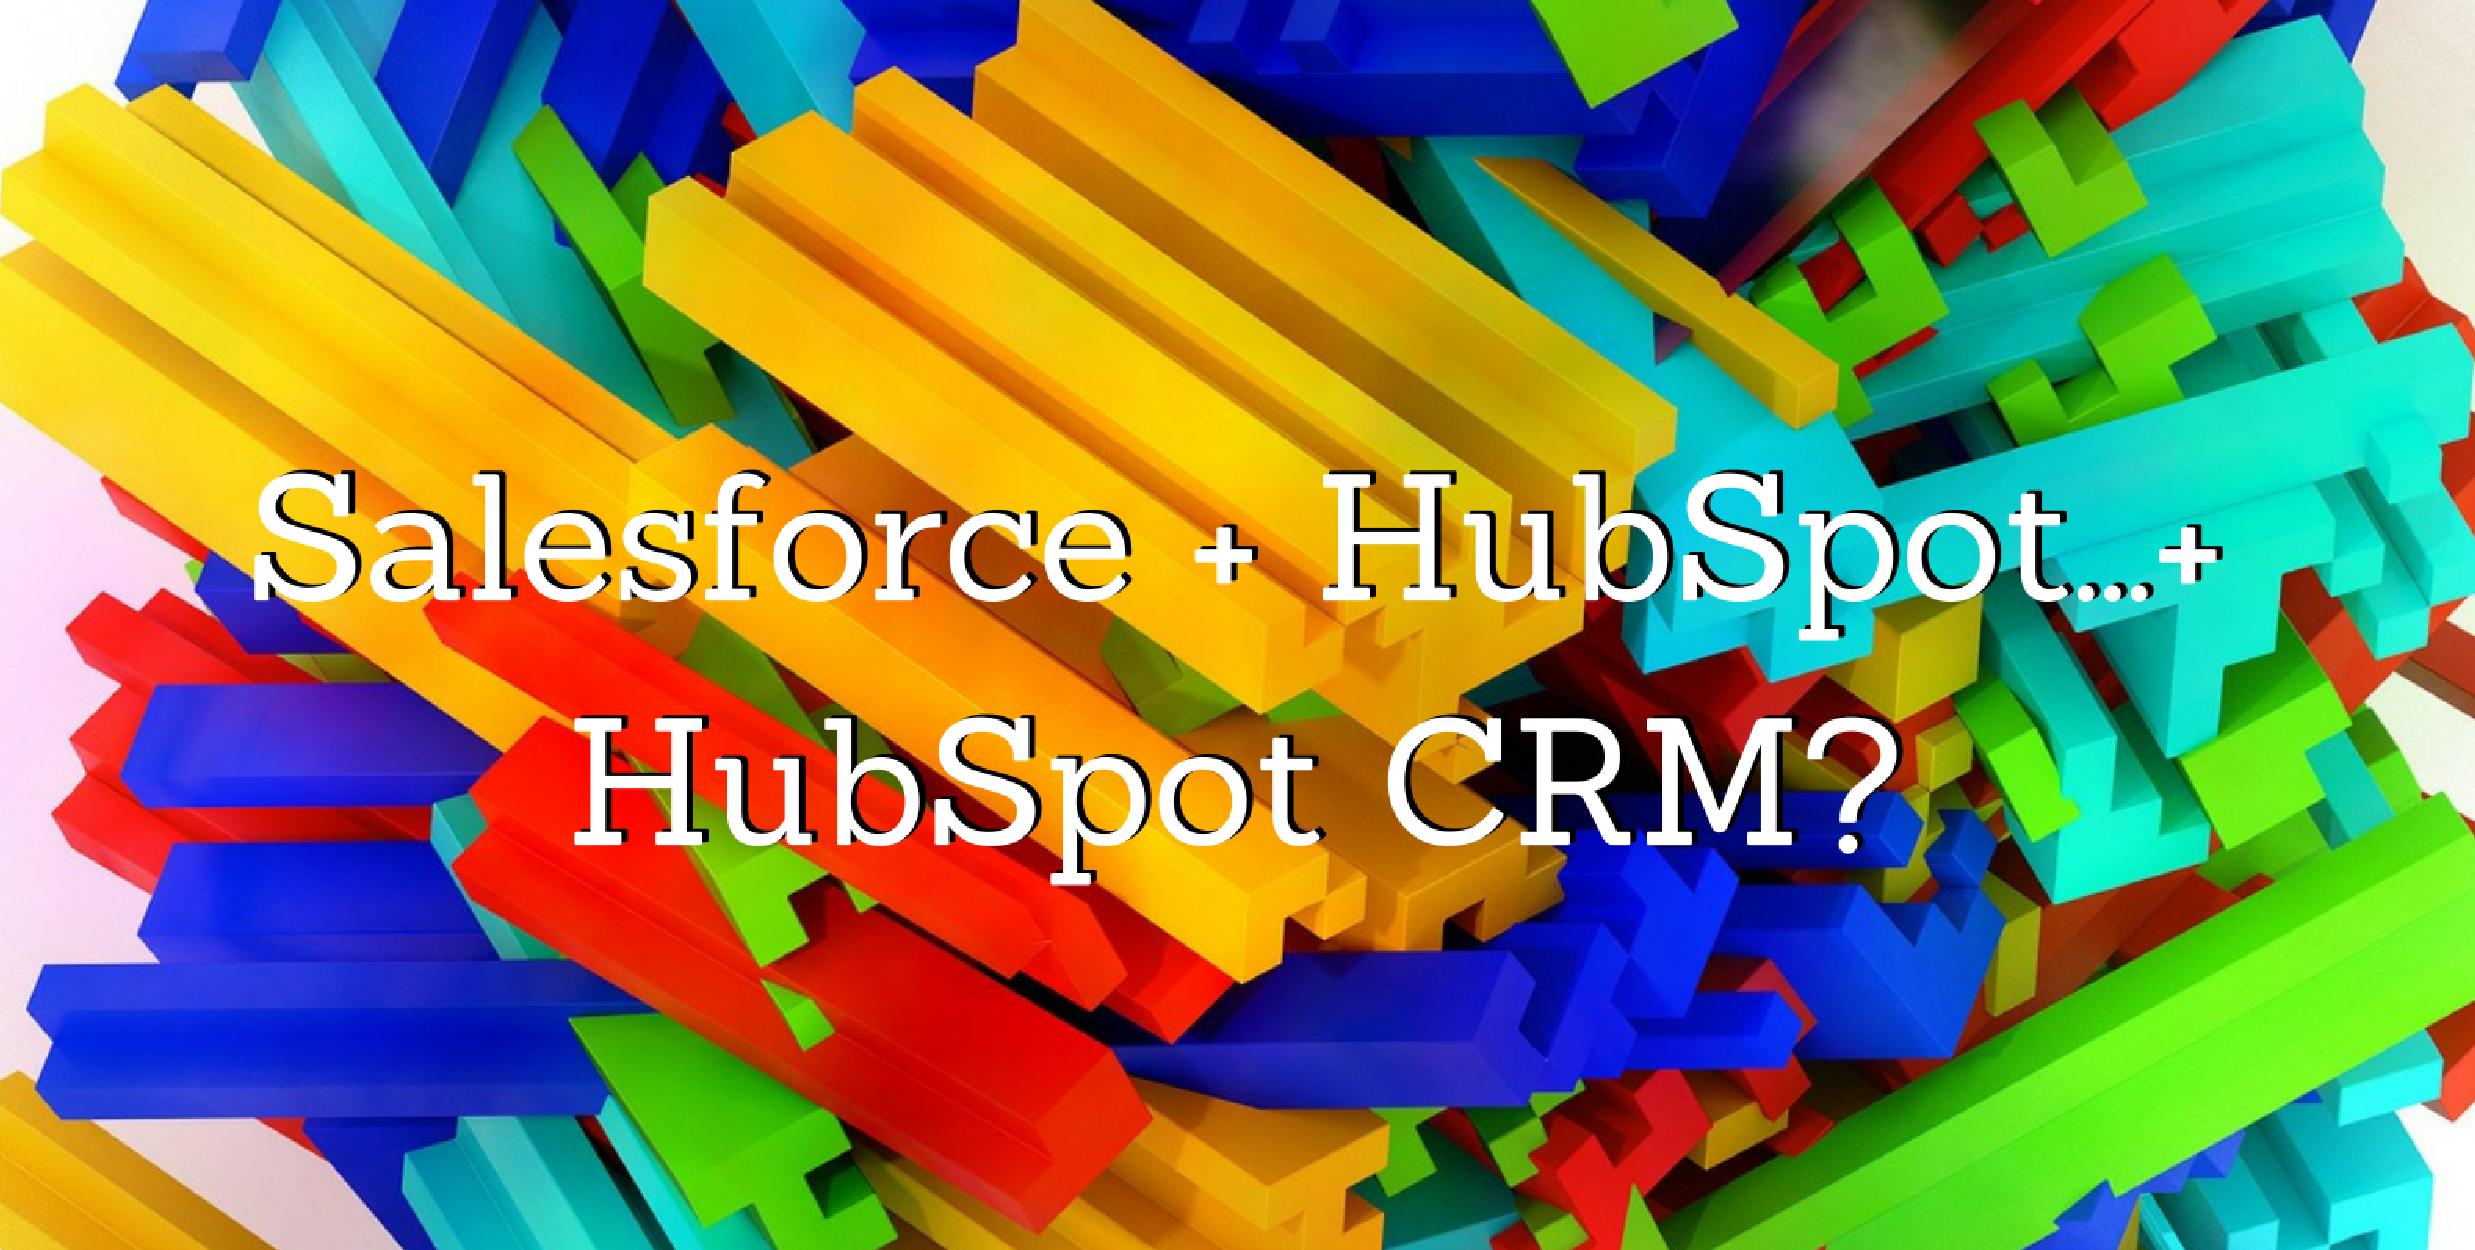 HubSpot CRM - Salesforce integration